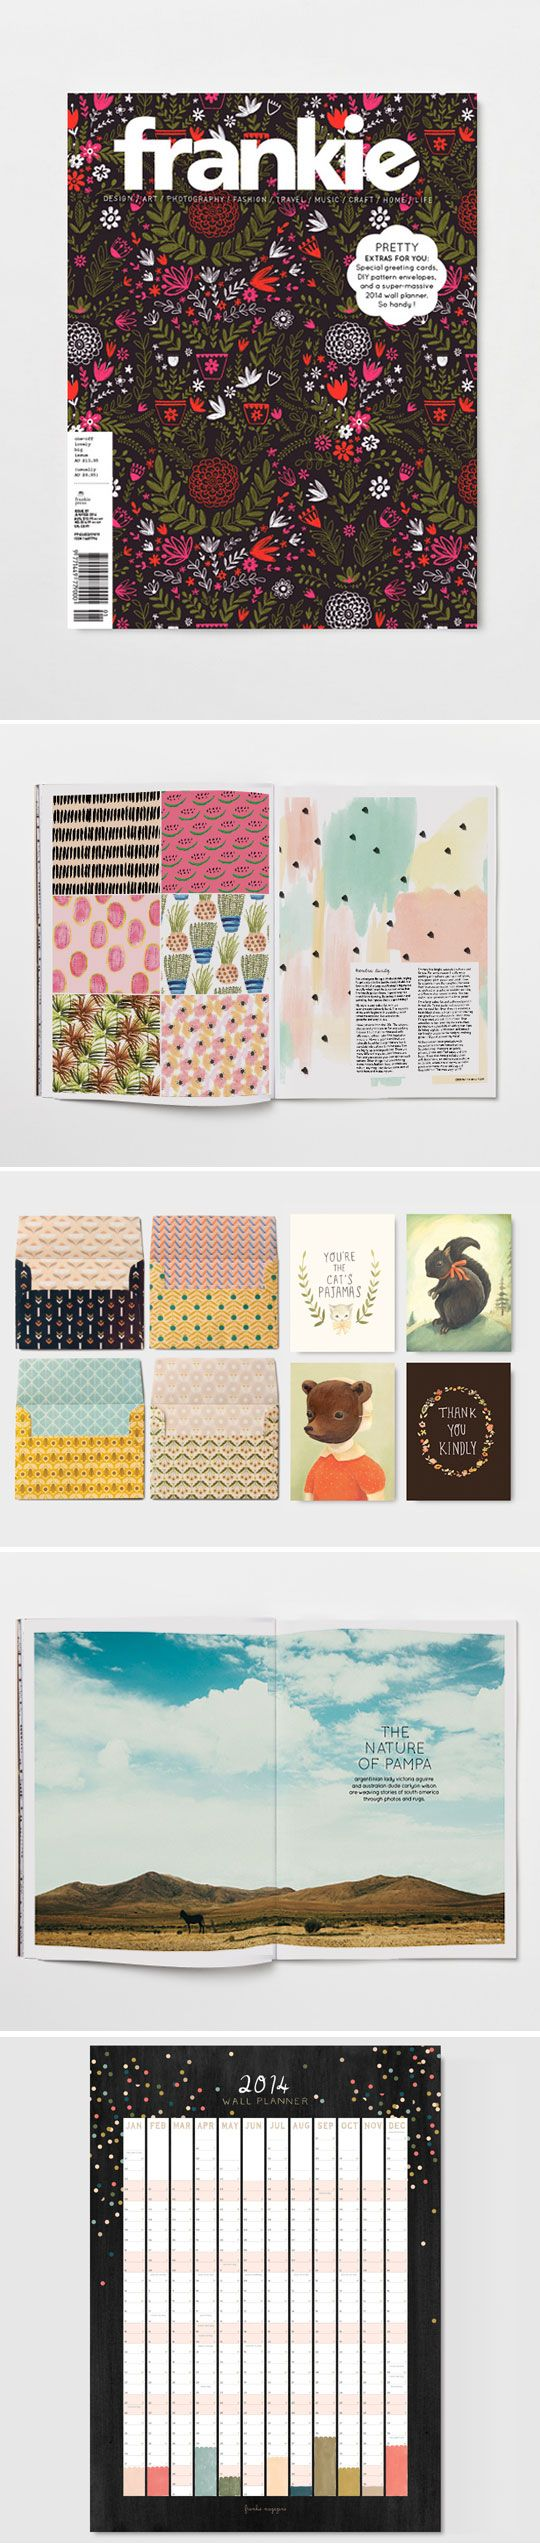 frankie #57 by frankie press  |  Pipit Zakka Store